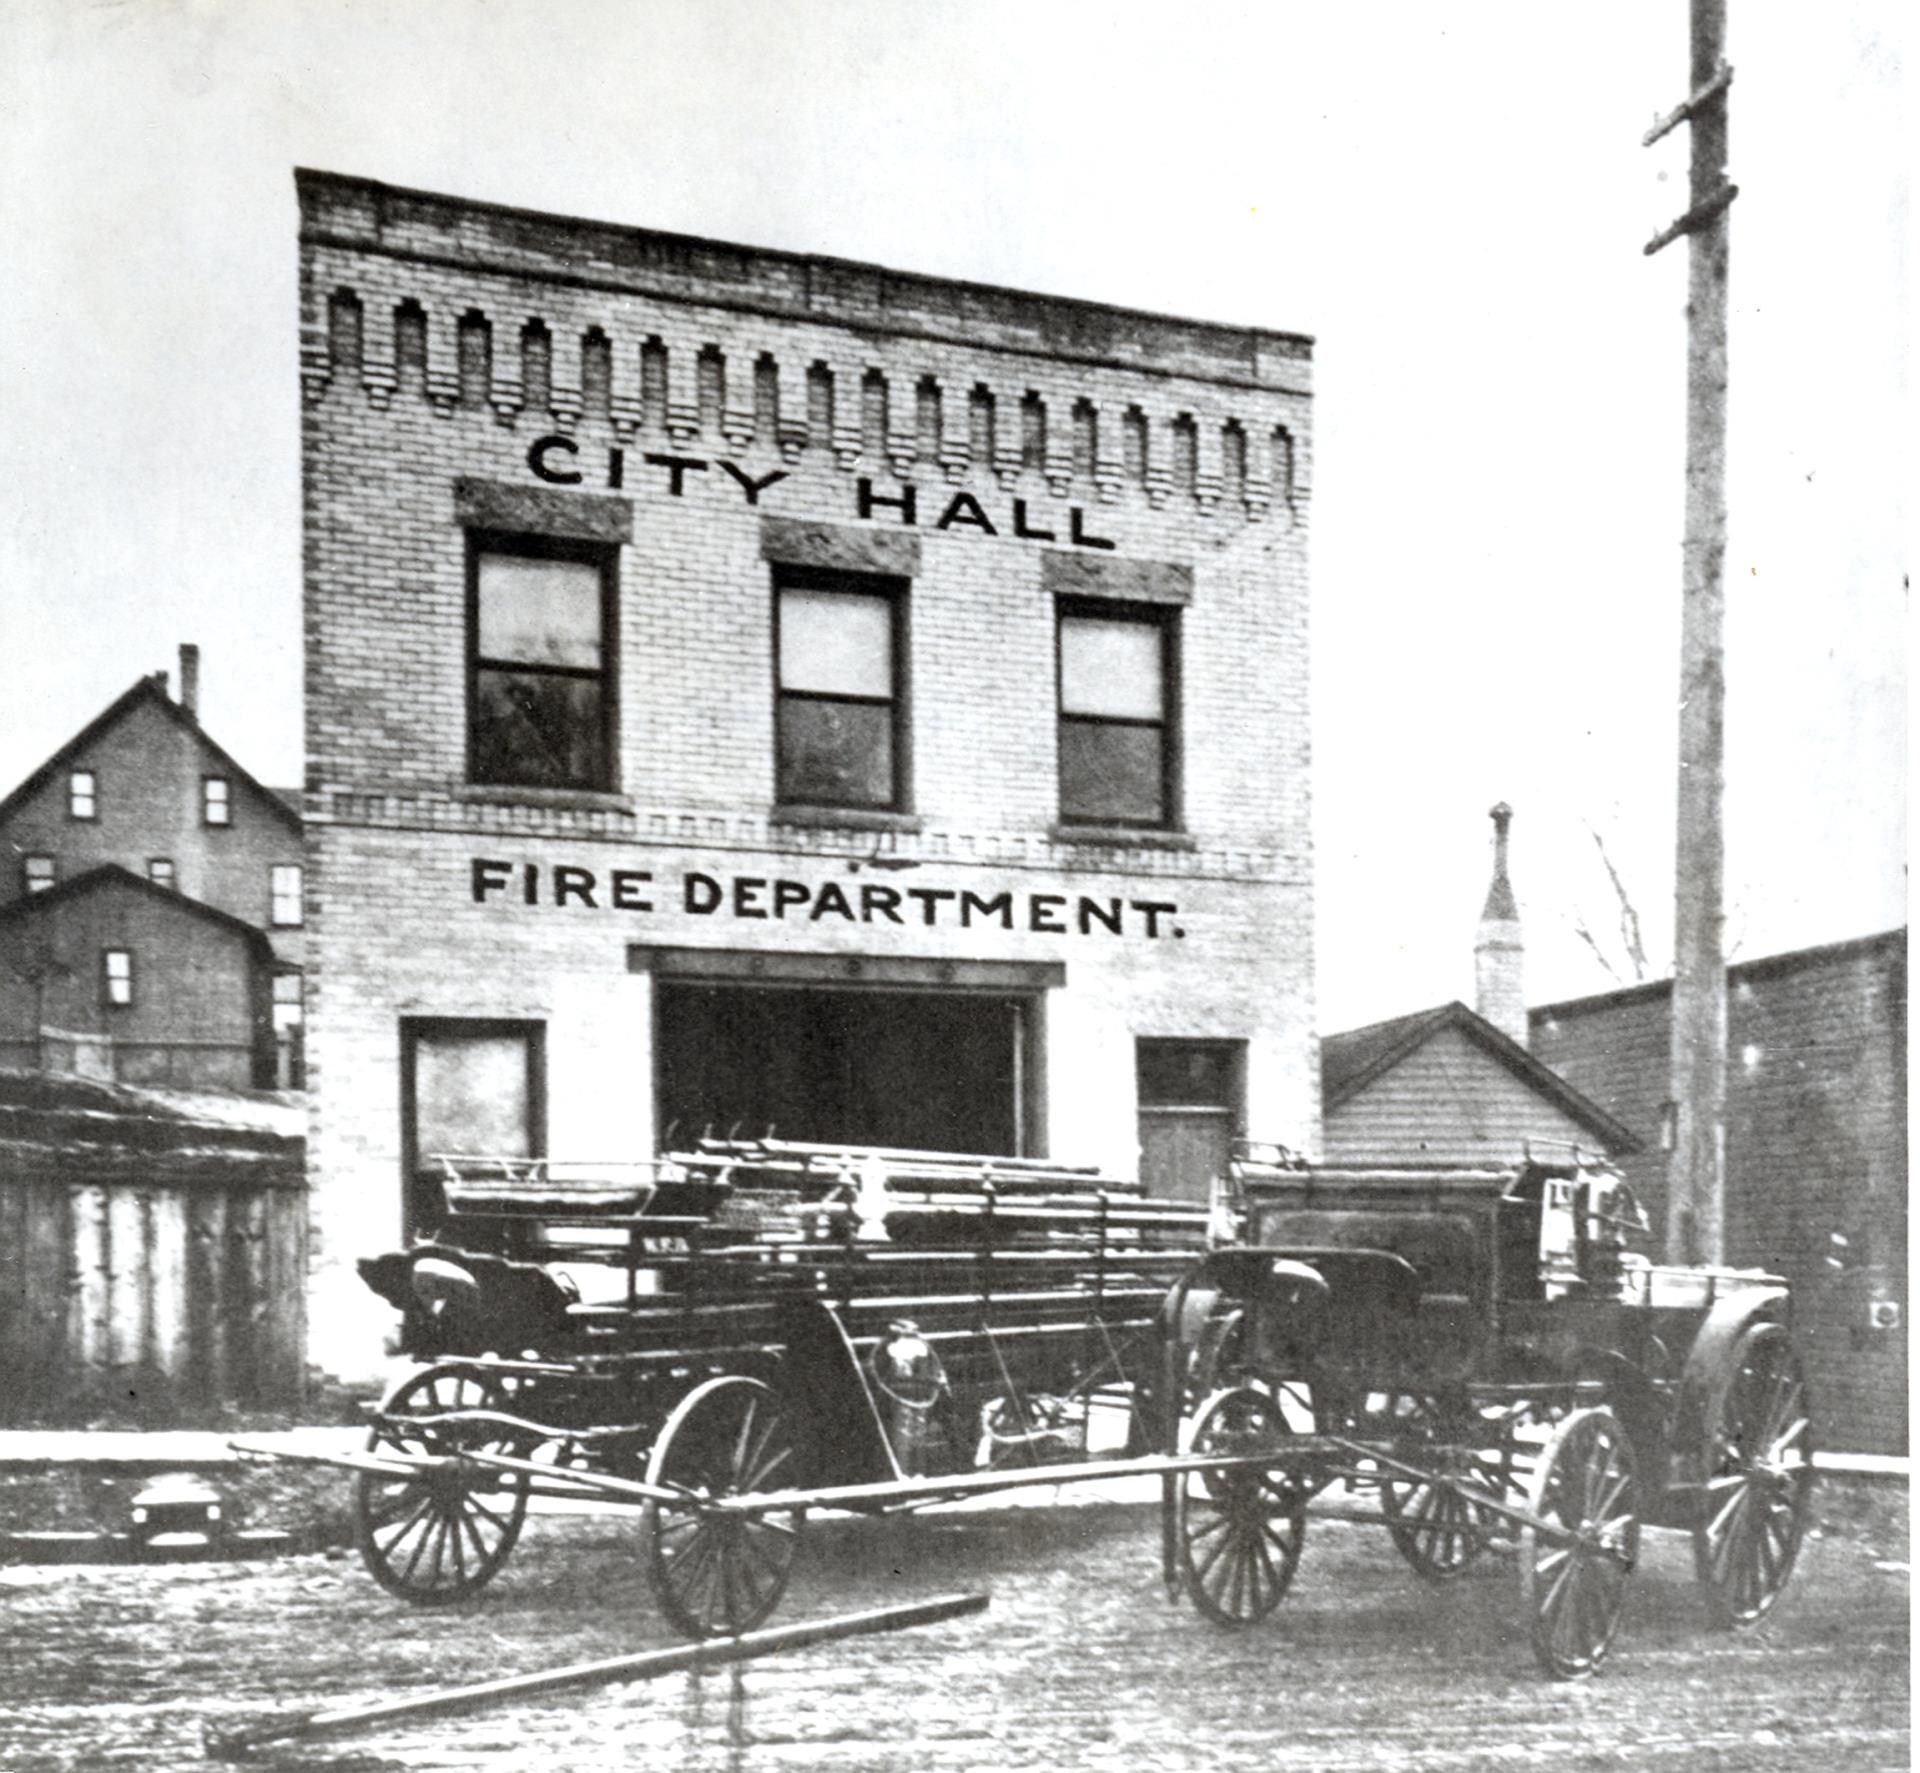 Fire Department in the early 1900s.